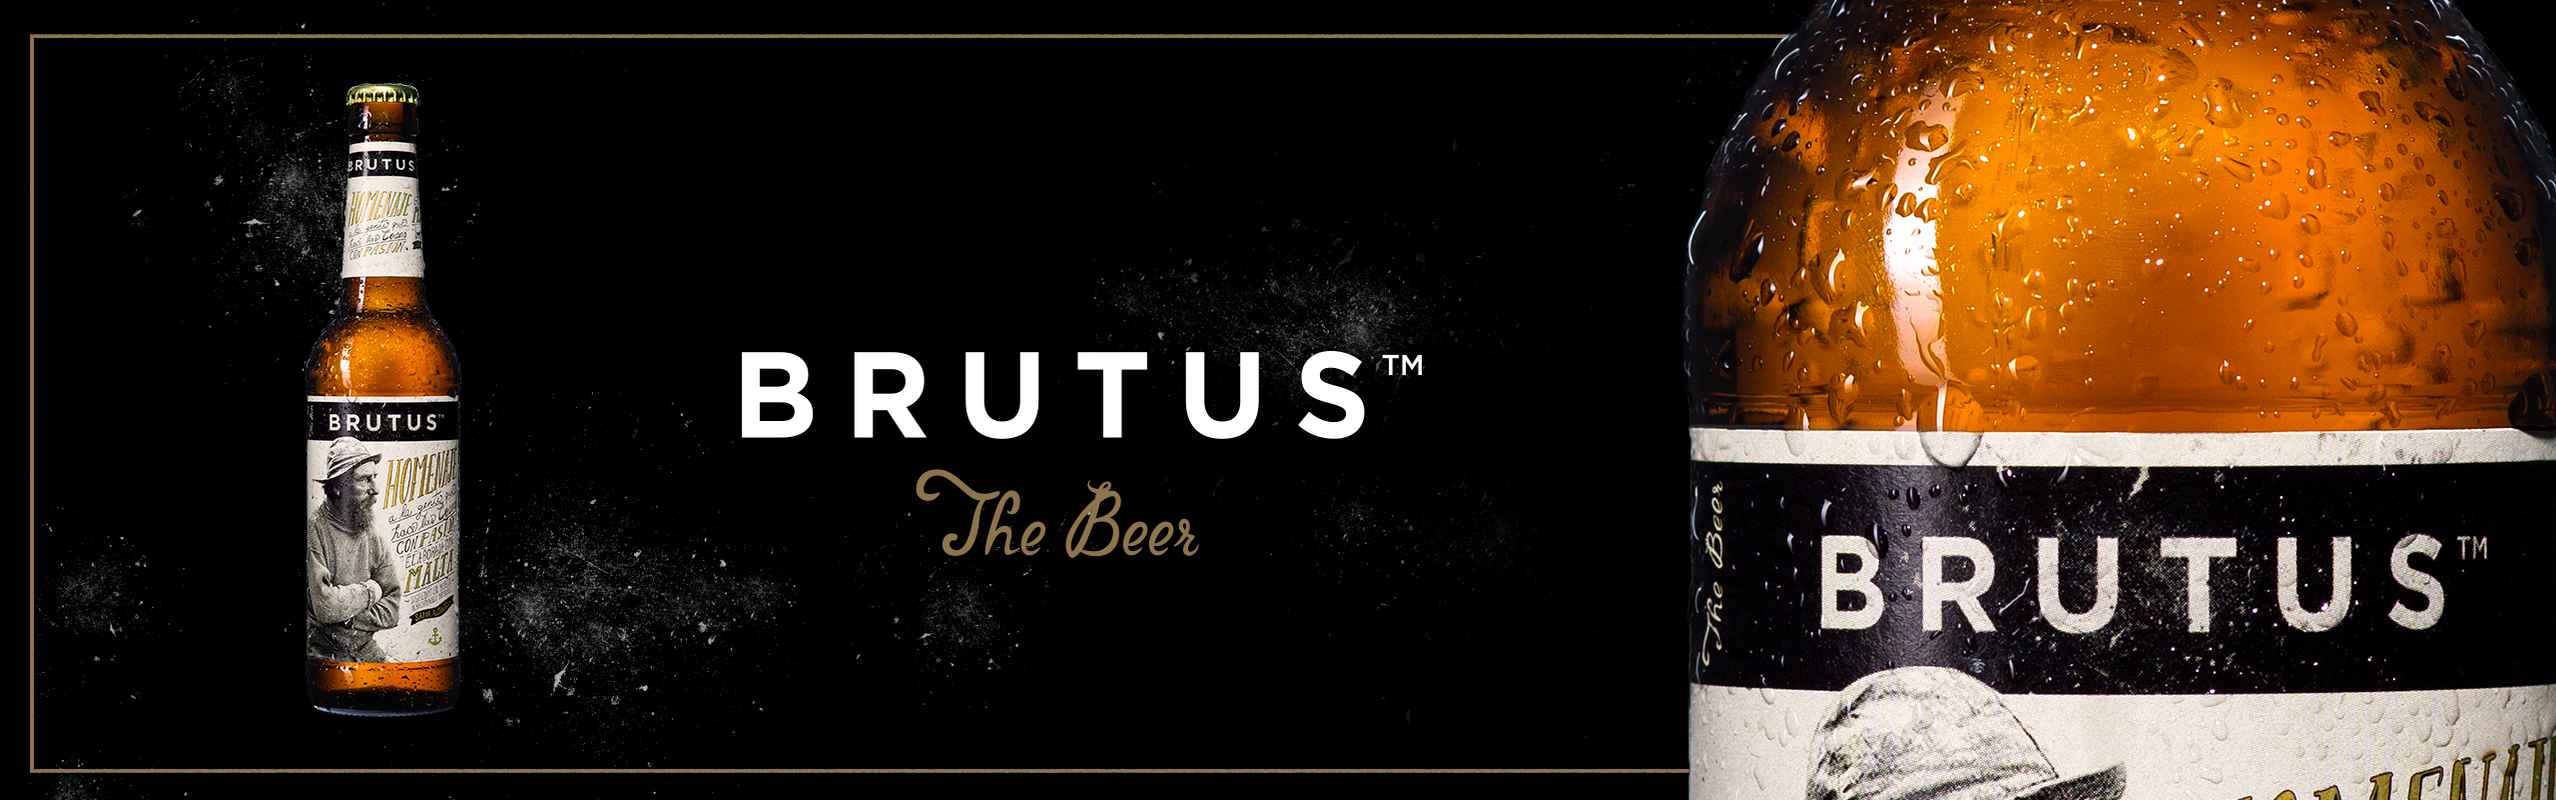 Brutus - The Beer